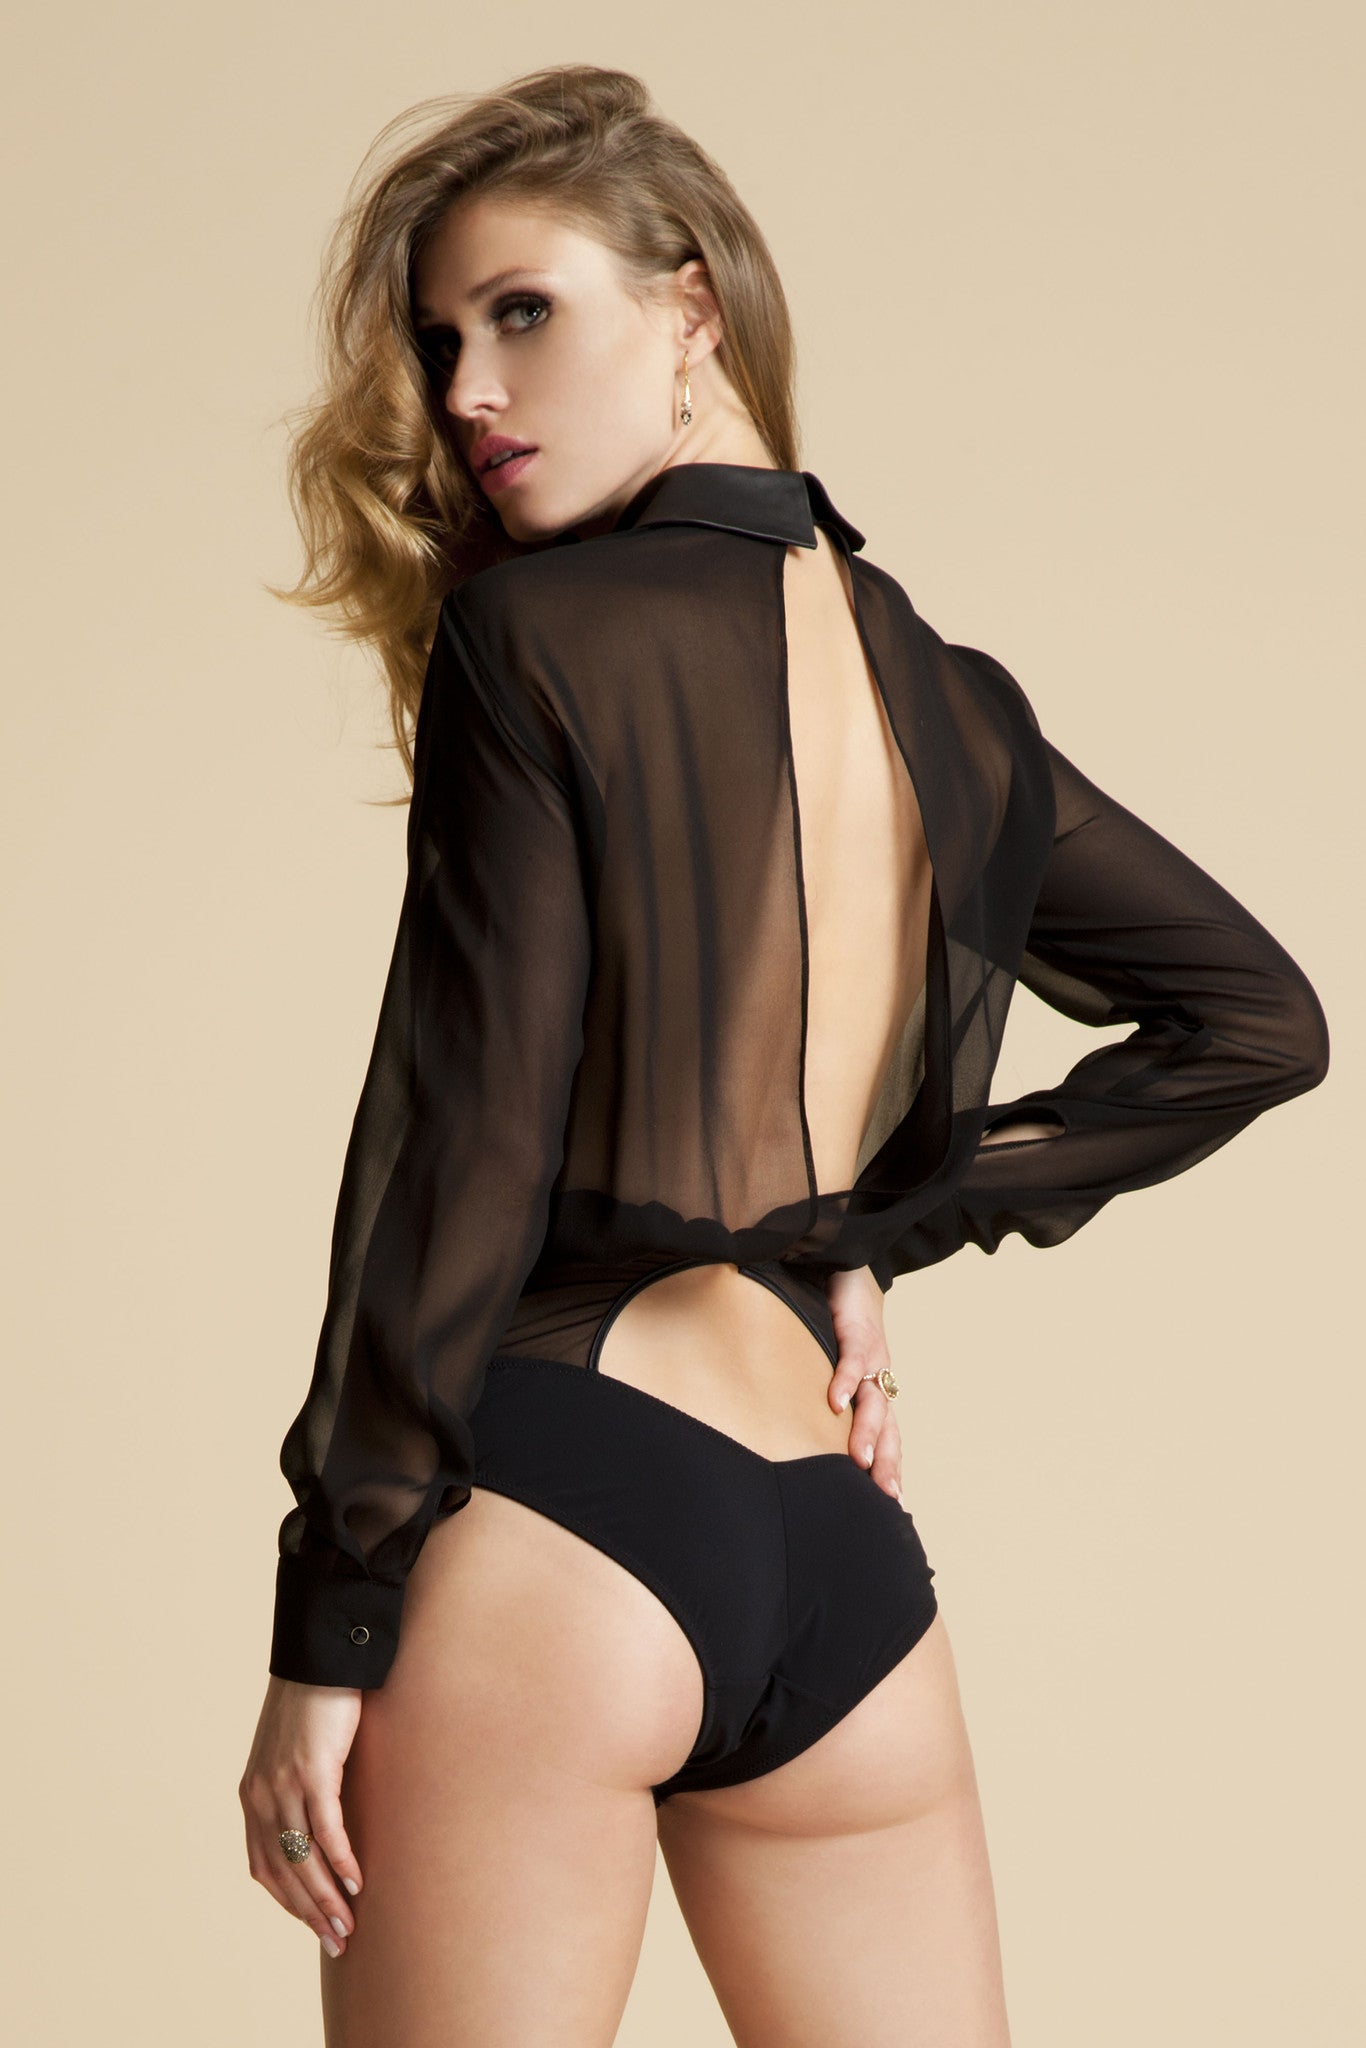 Tatu Couture Lula Body back view on model